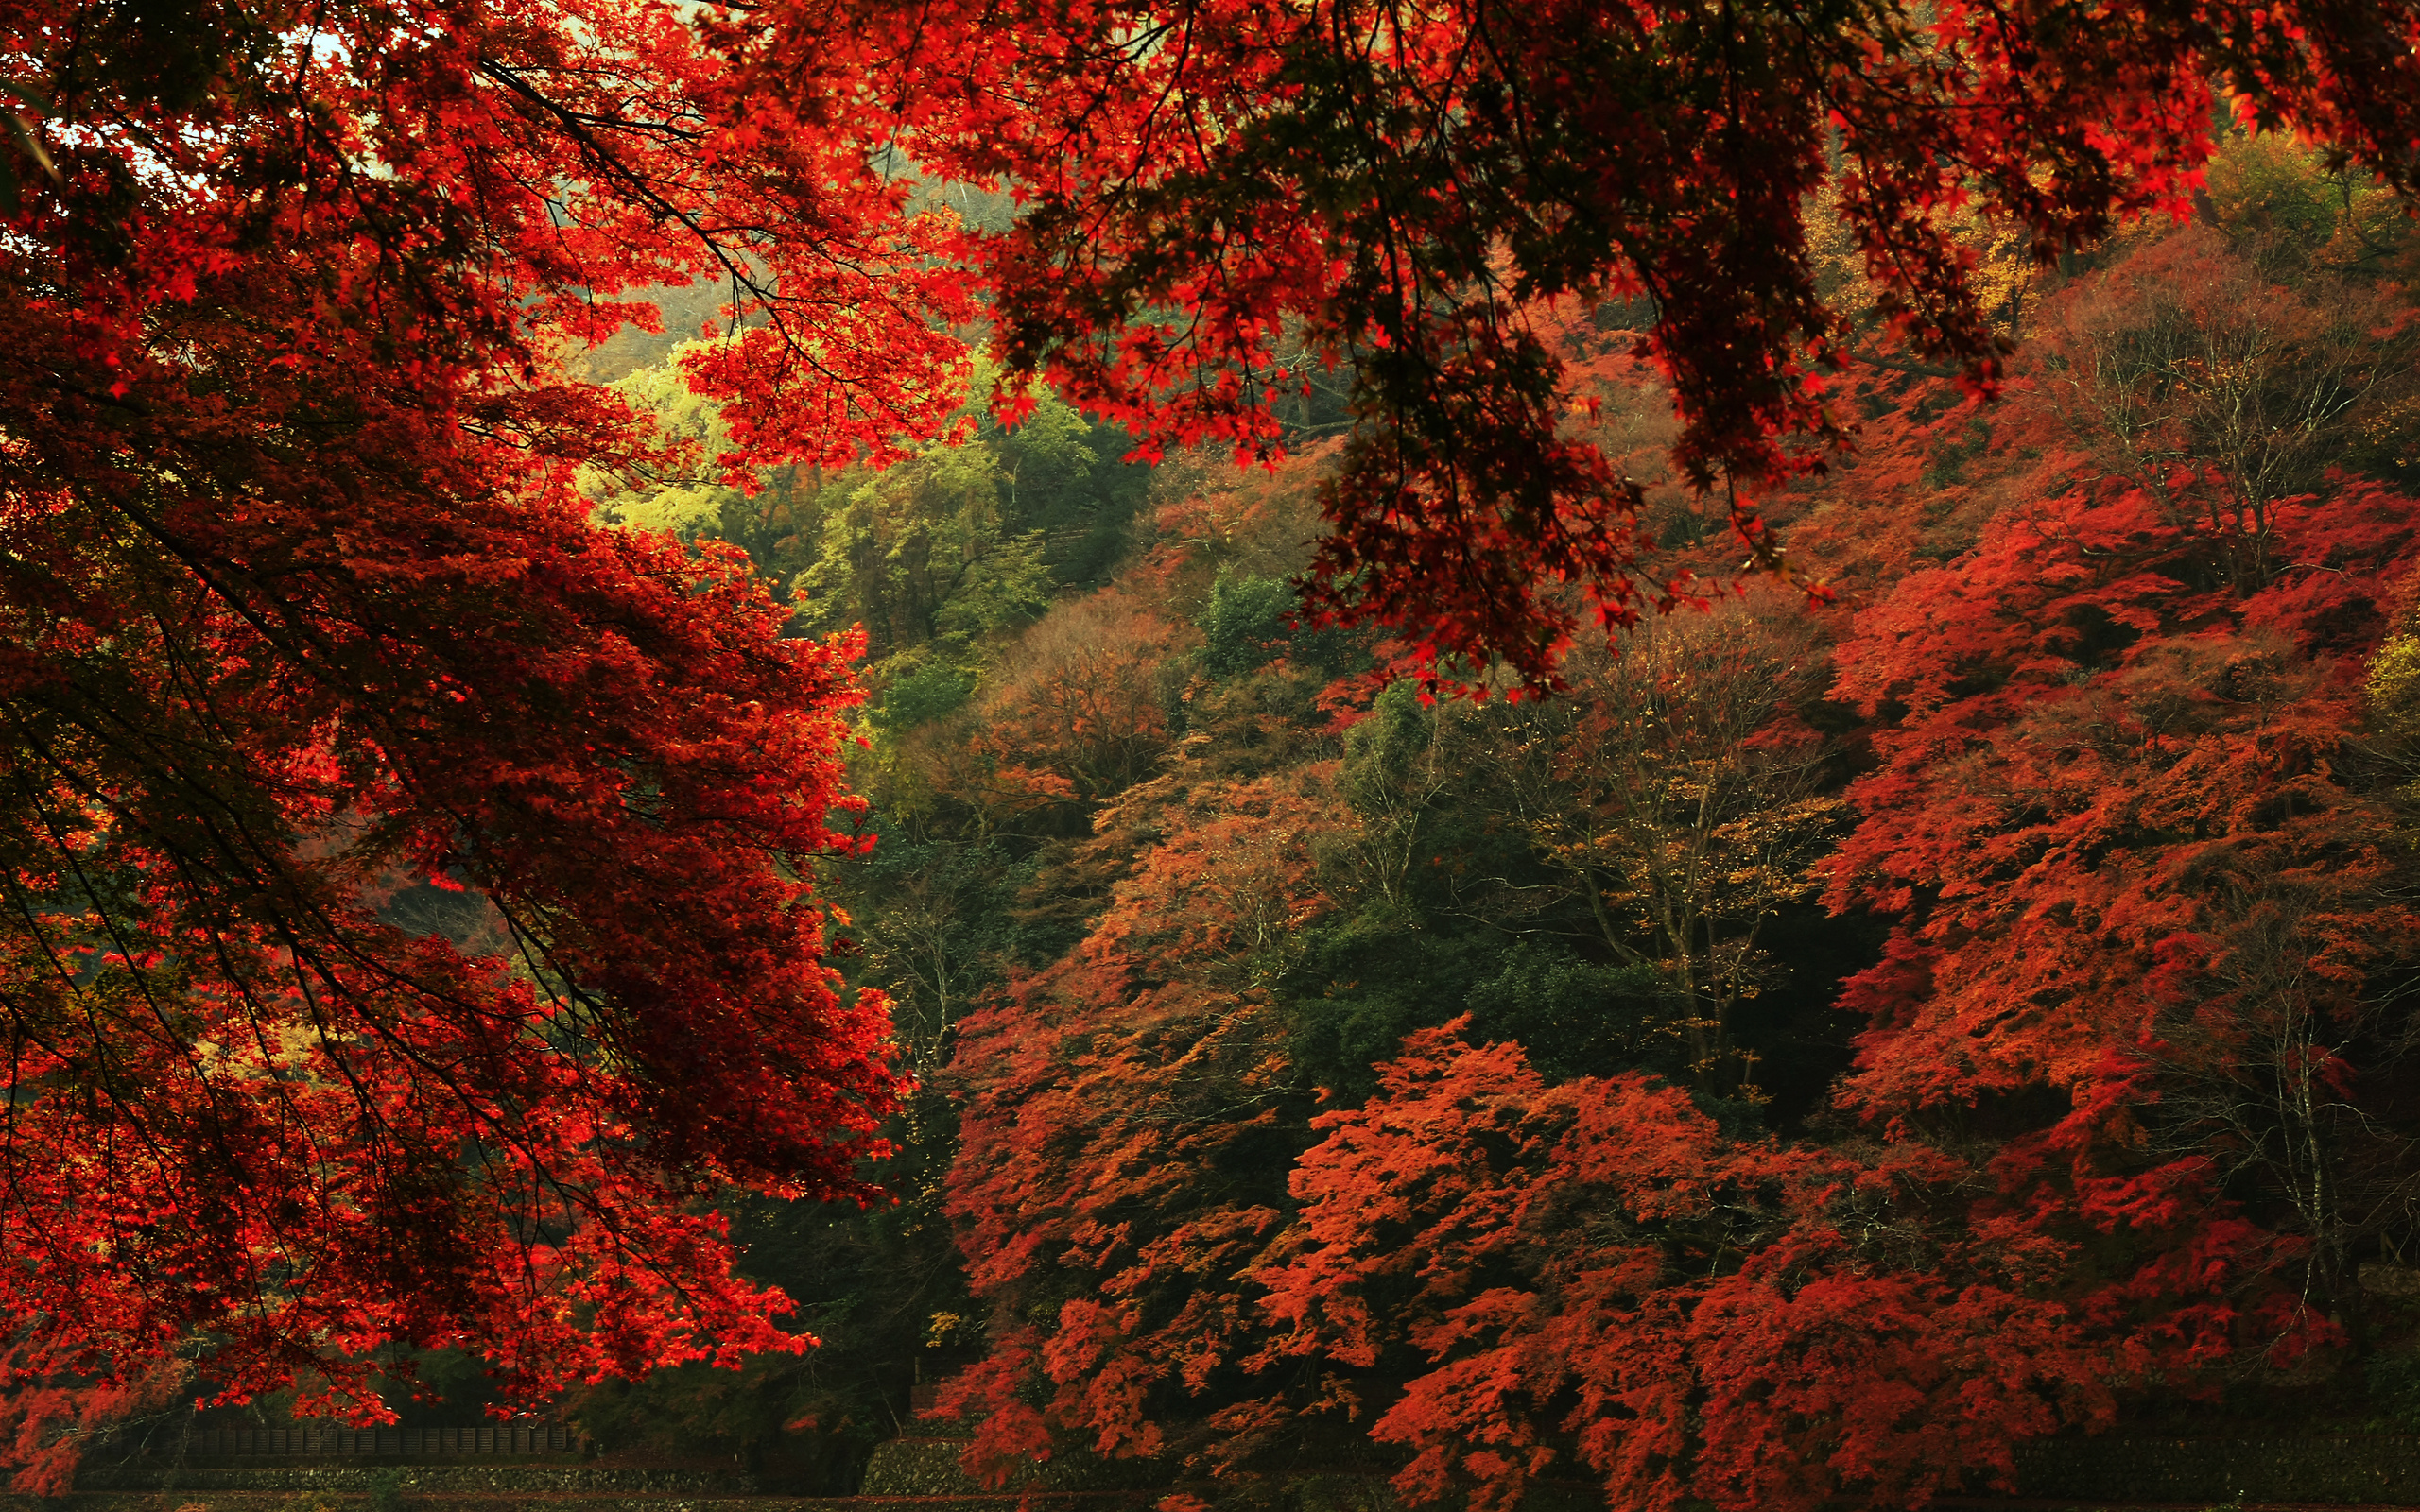 red leaves hd wallpaper - photo #38